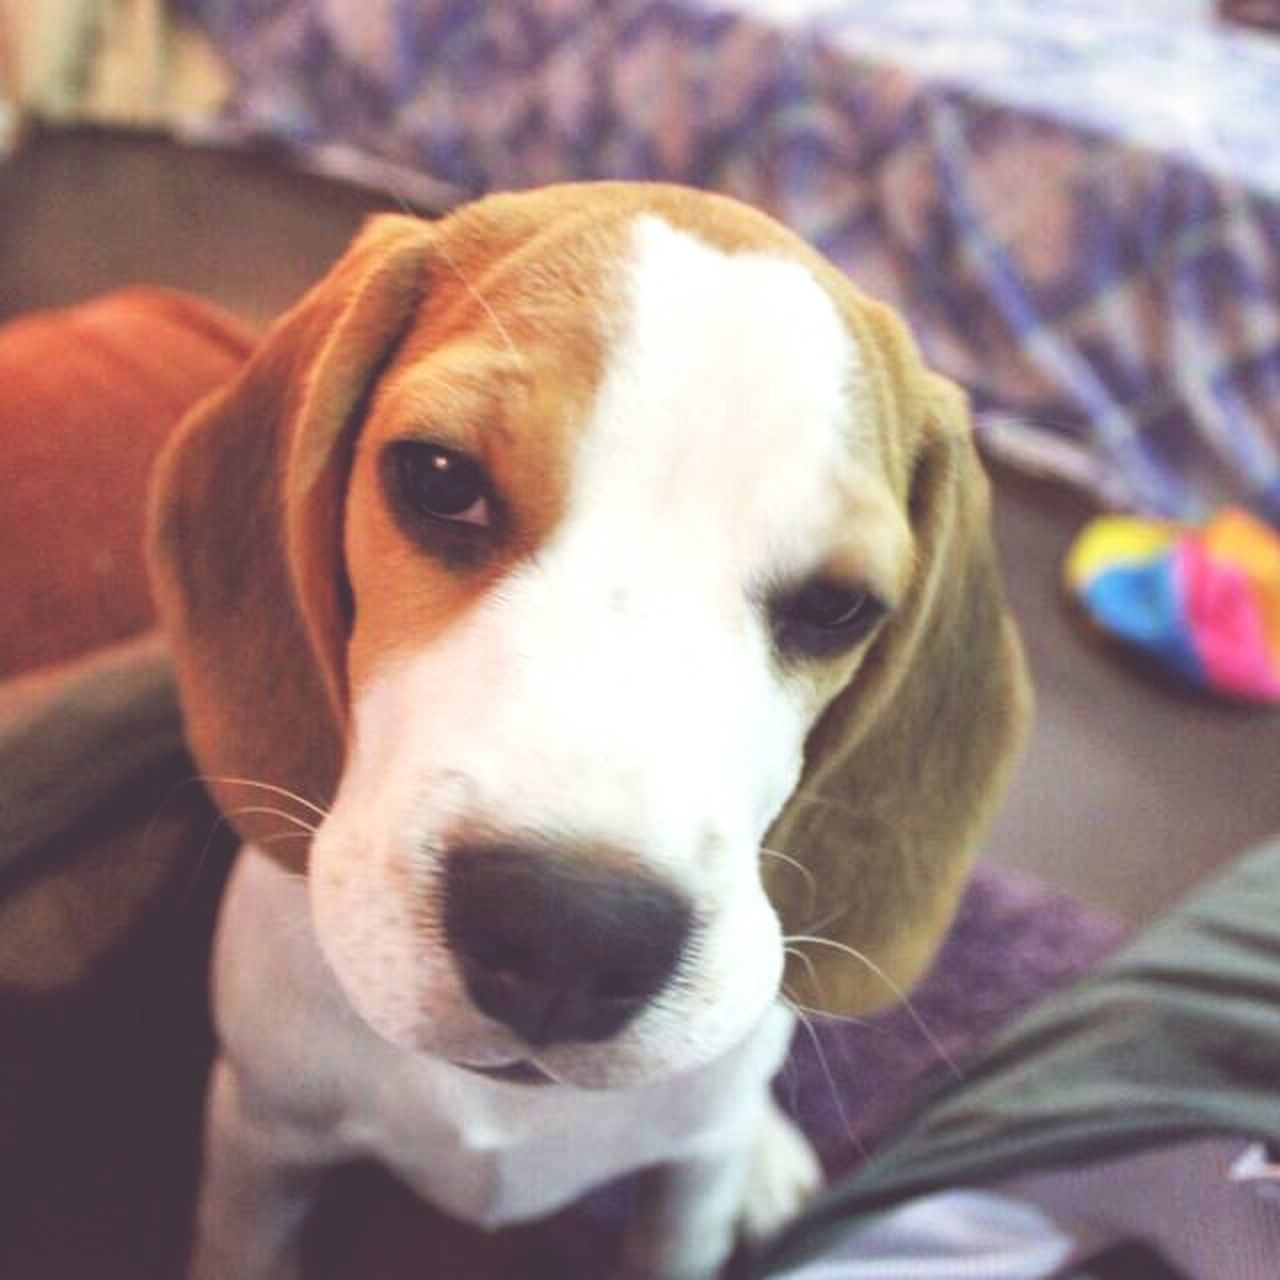 Sleepyhead 😘Animal Themes Domestic Animals One Animal Pets Dog Close-up Mammal Portrait Animal Head  Looking At Camera Zoology Focus On Foreground Snout Animal Animal Nose Loyalty No People Beaglelove Dogs